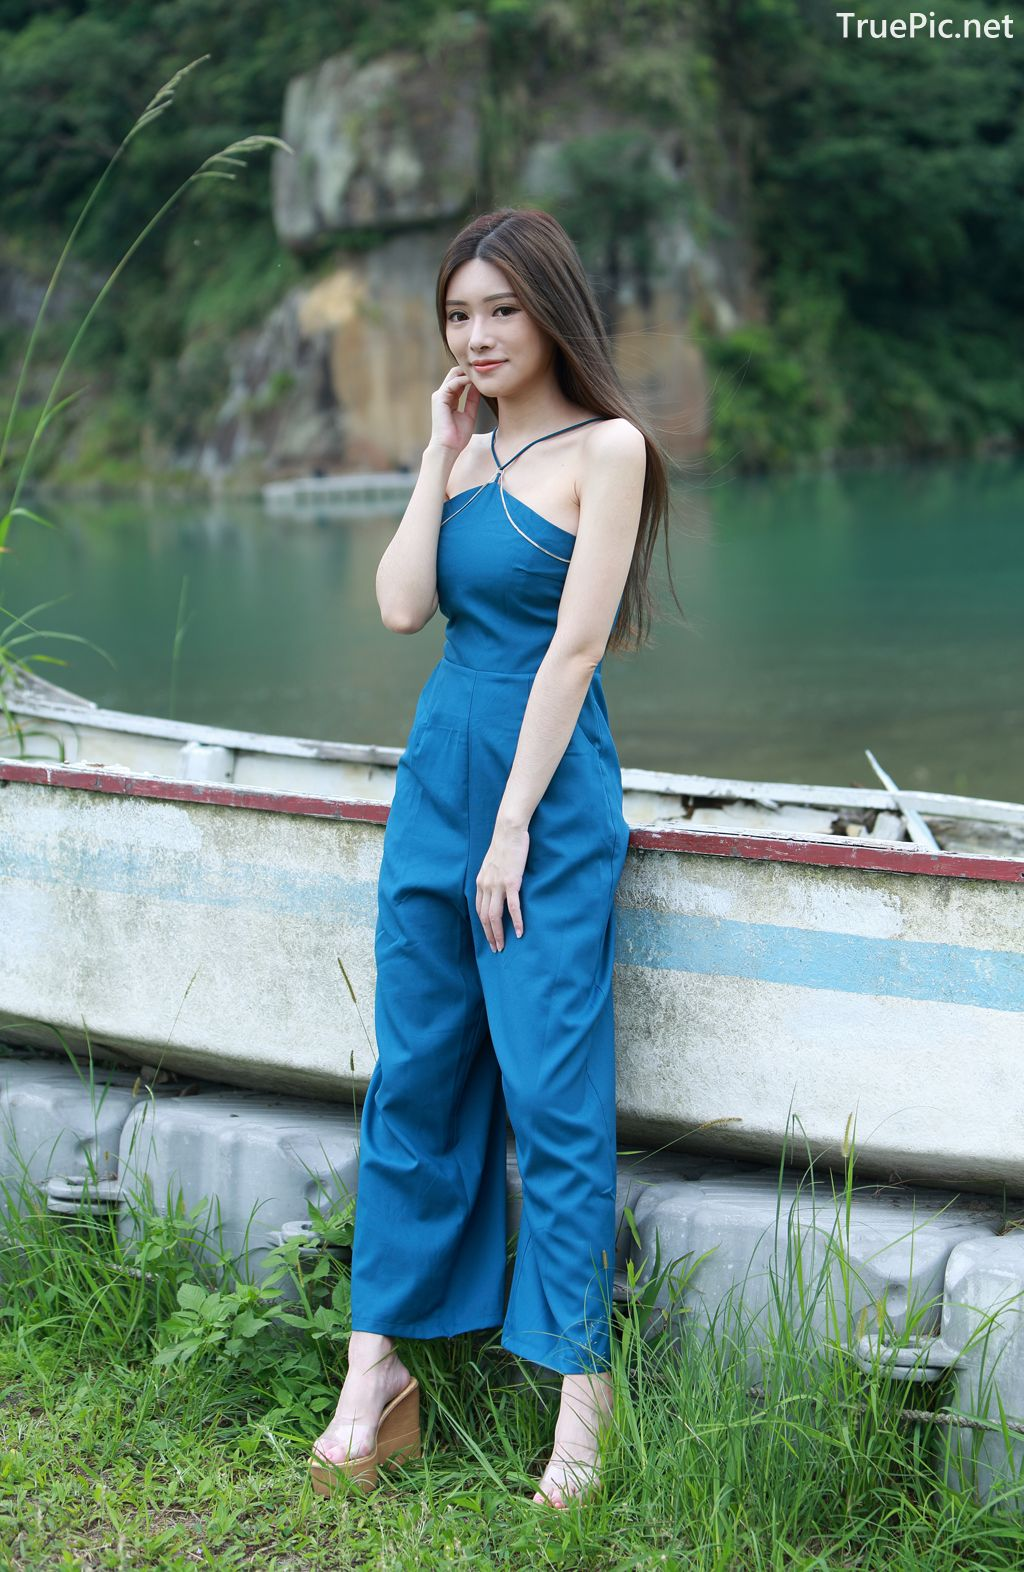 Image-Taiwanese-Pure-Girl-承容-Young-Beautiful-And-Lovely-TruePic.net- Picture-6